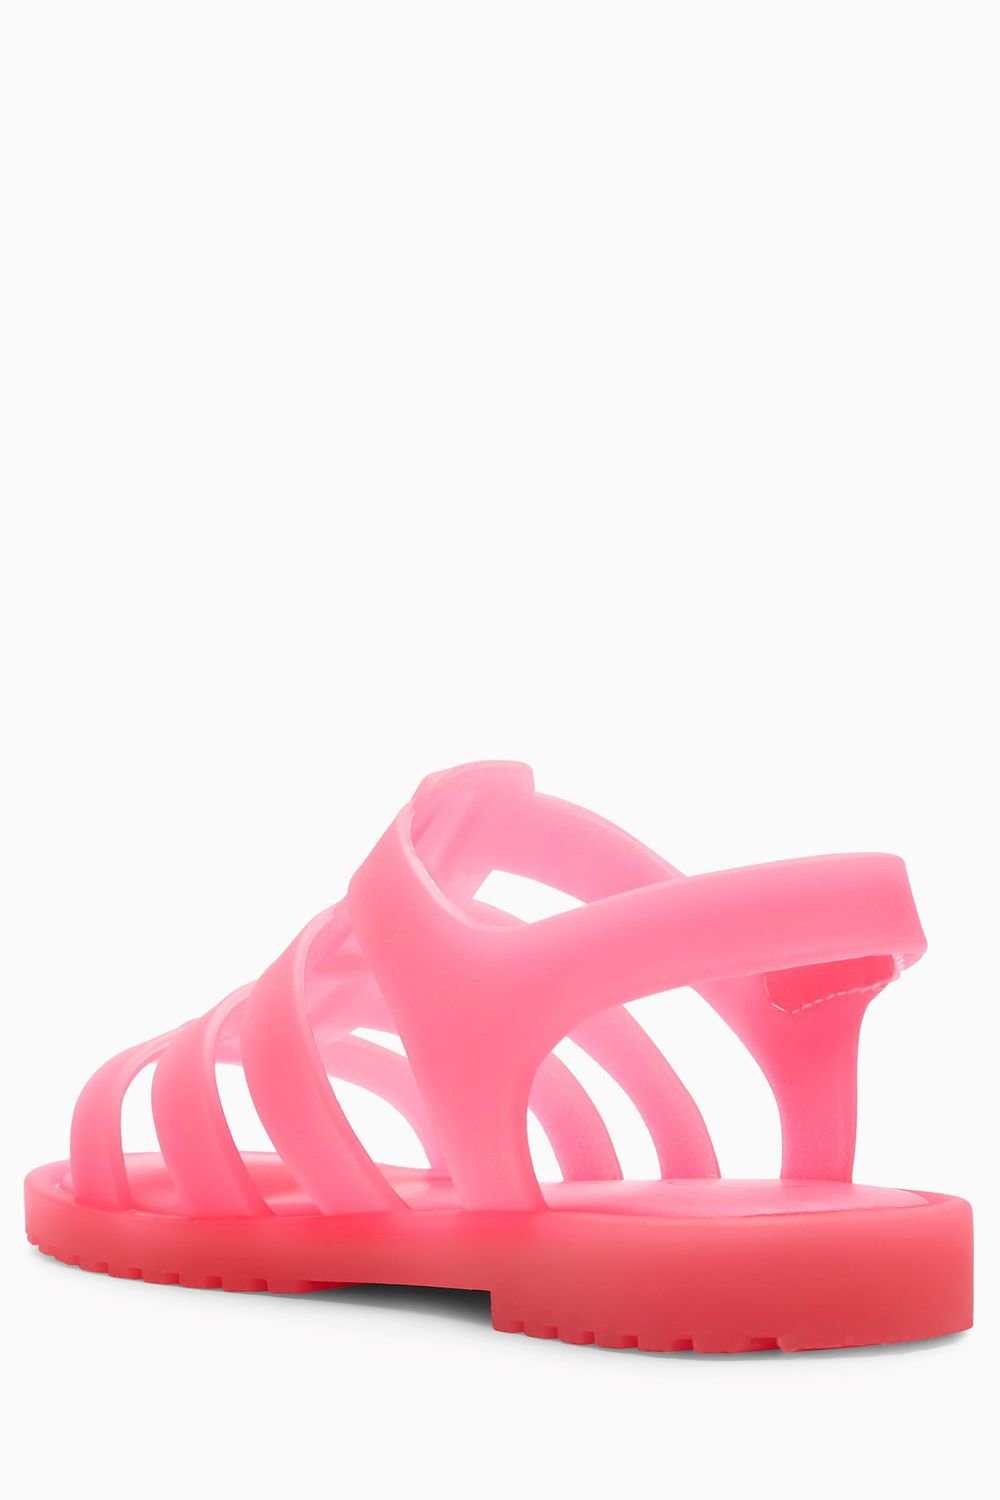 841b0d4eaea Next Jelly Fisherman Sandals (Younger Girls) Online